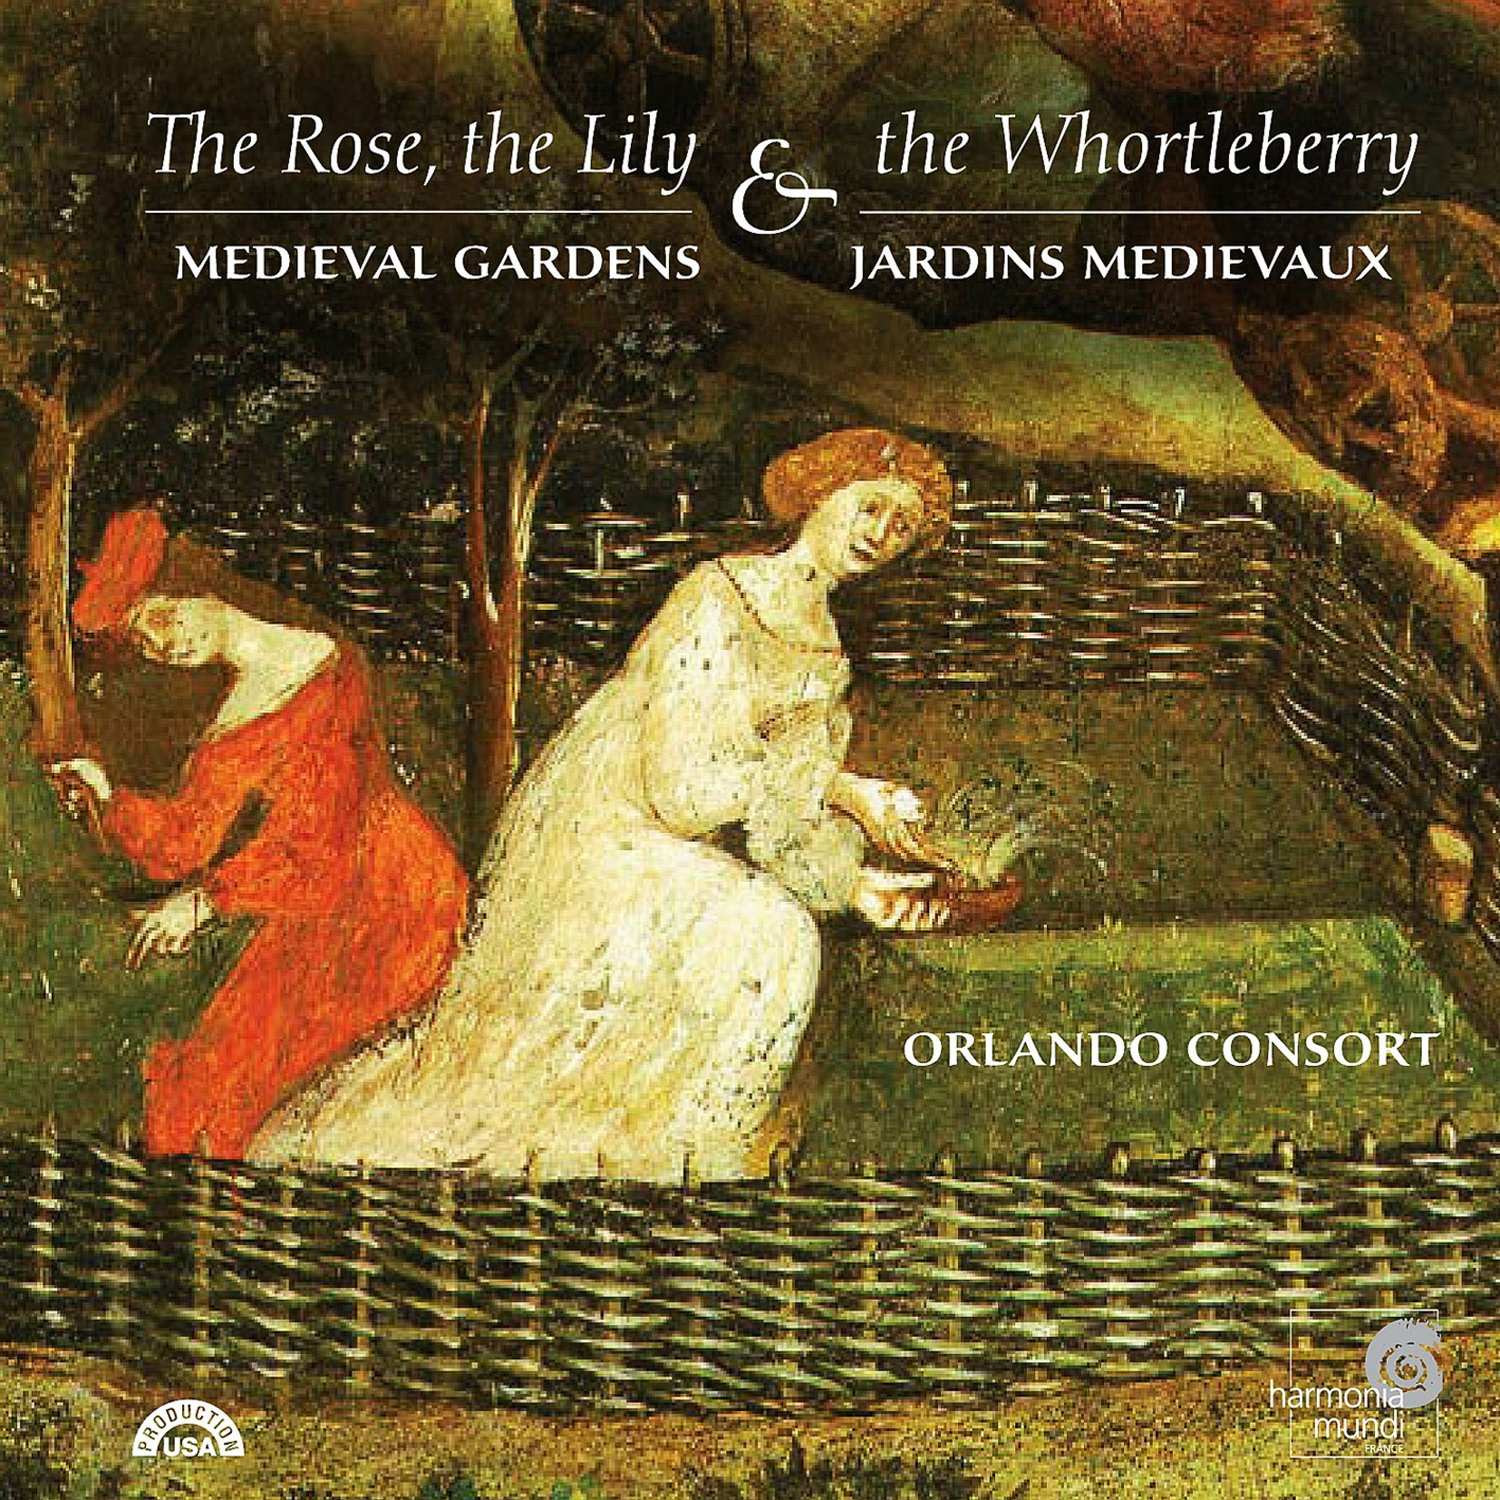 The Rose, the Lily & the Whortleberry (Medieval Gardens in Music) - Orlando Consort by Harmonia Mundi Fr.